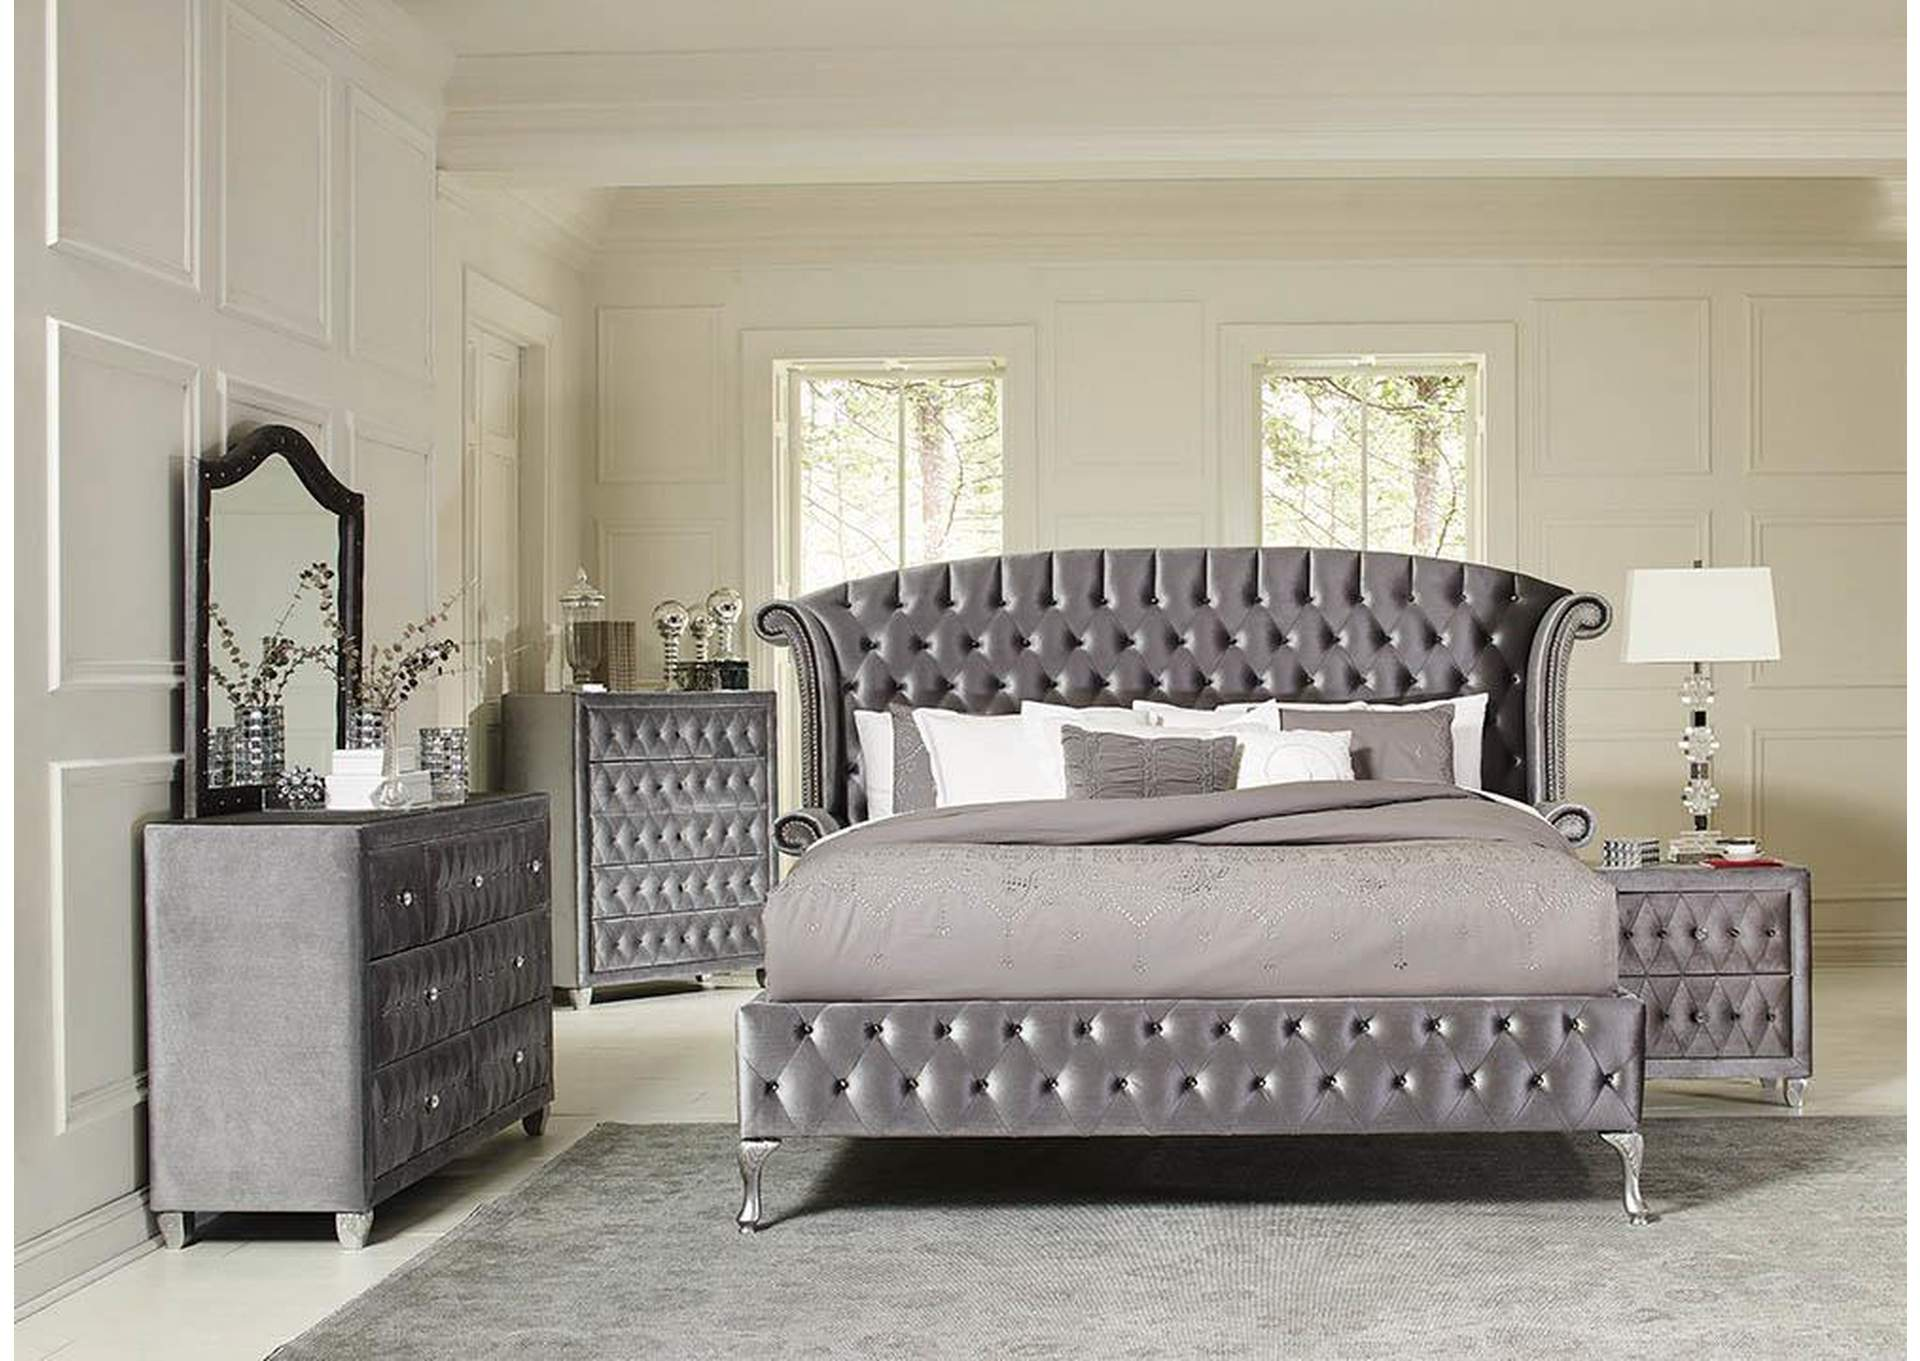 Soft Amber Deanna Contemporary Metallic California King Bed,Coaster Furniture